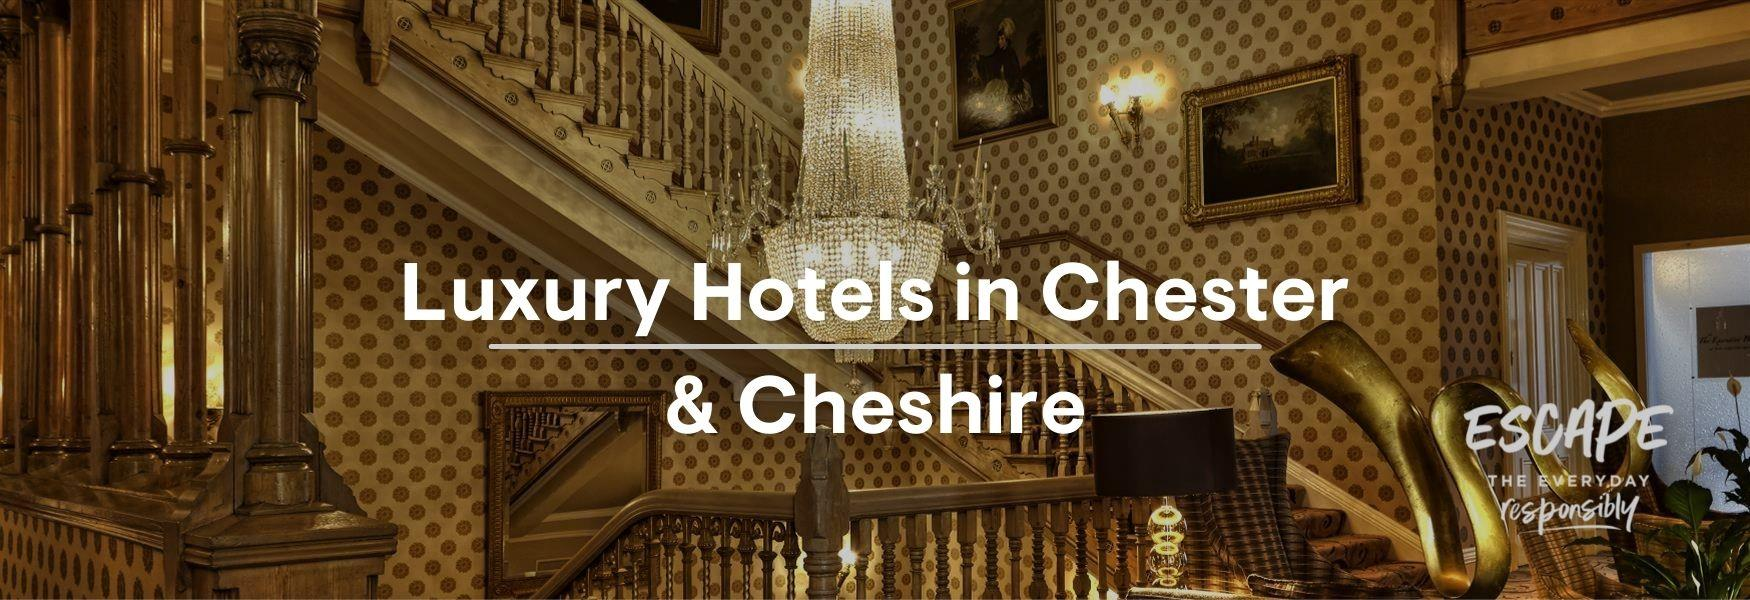 Luxury Hotels in Chester and Cheshire